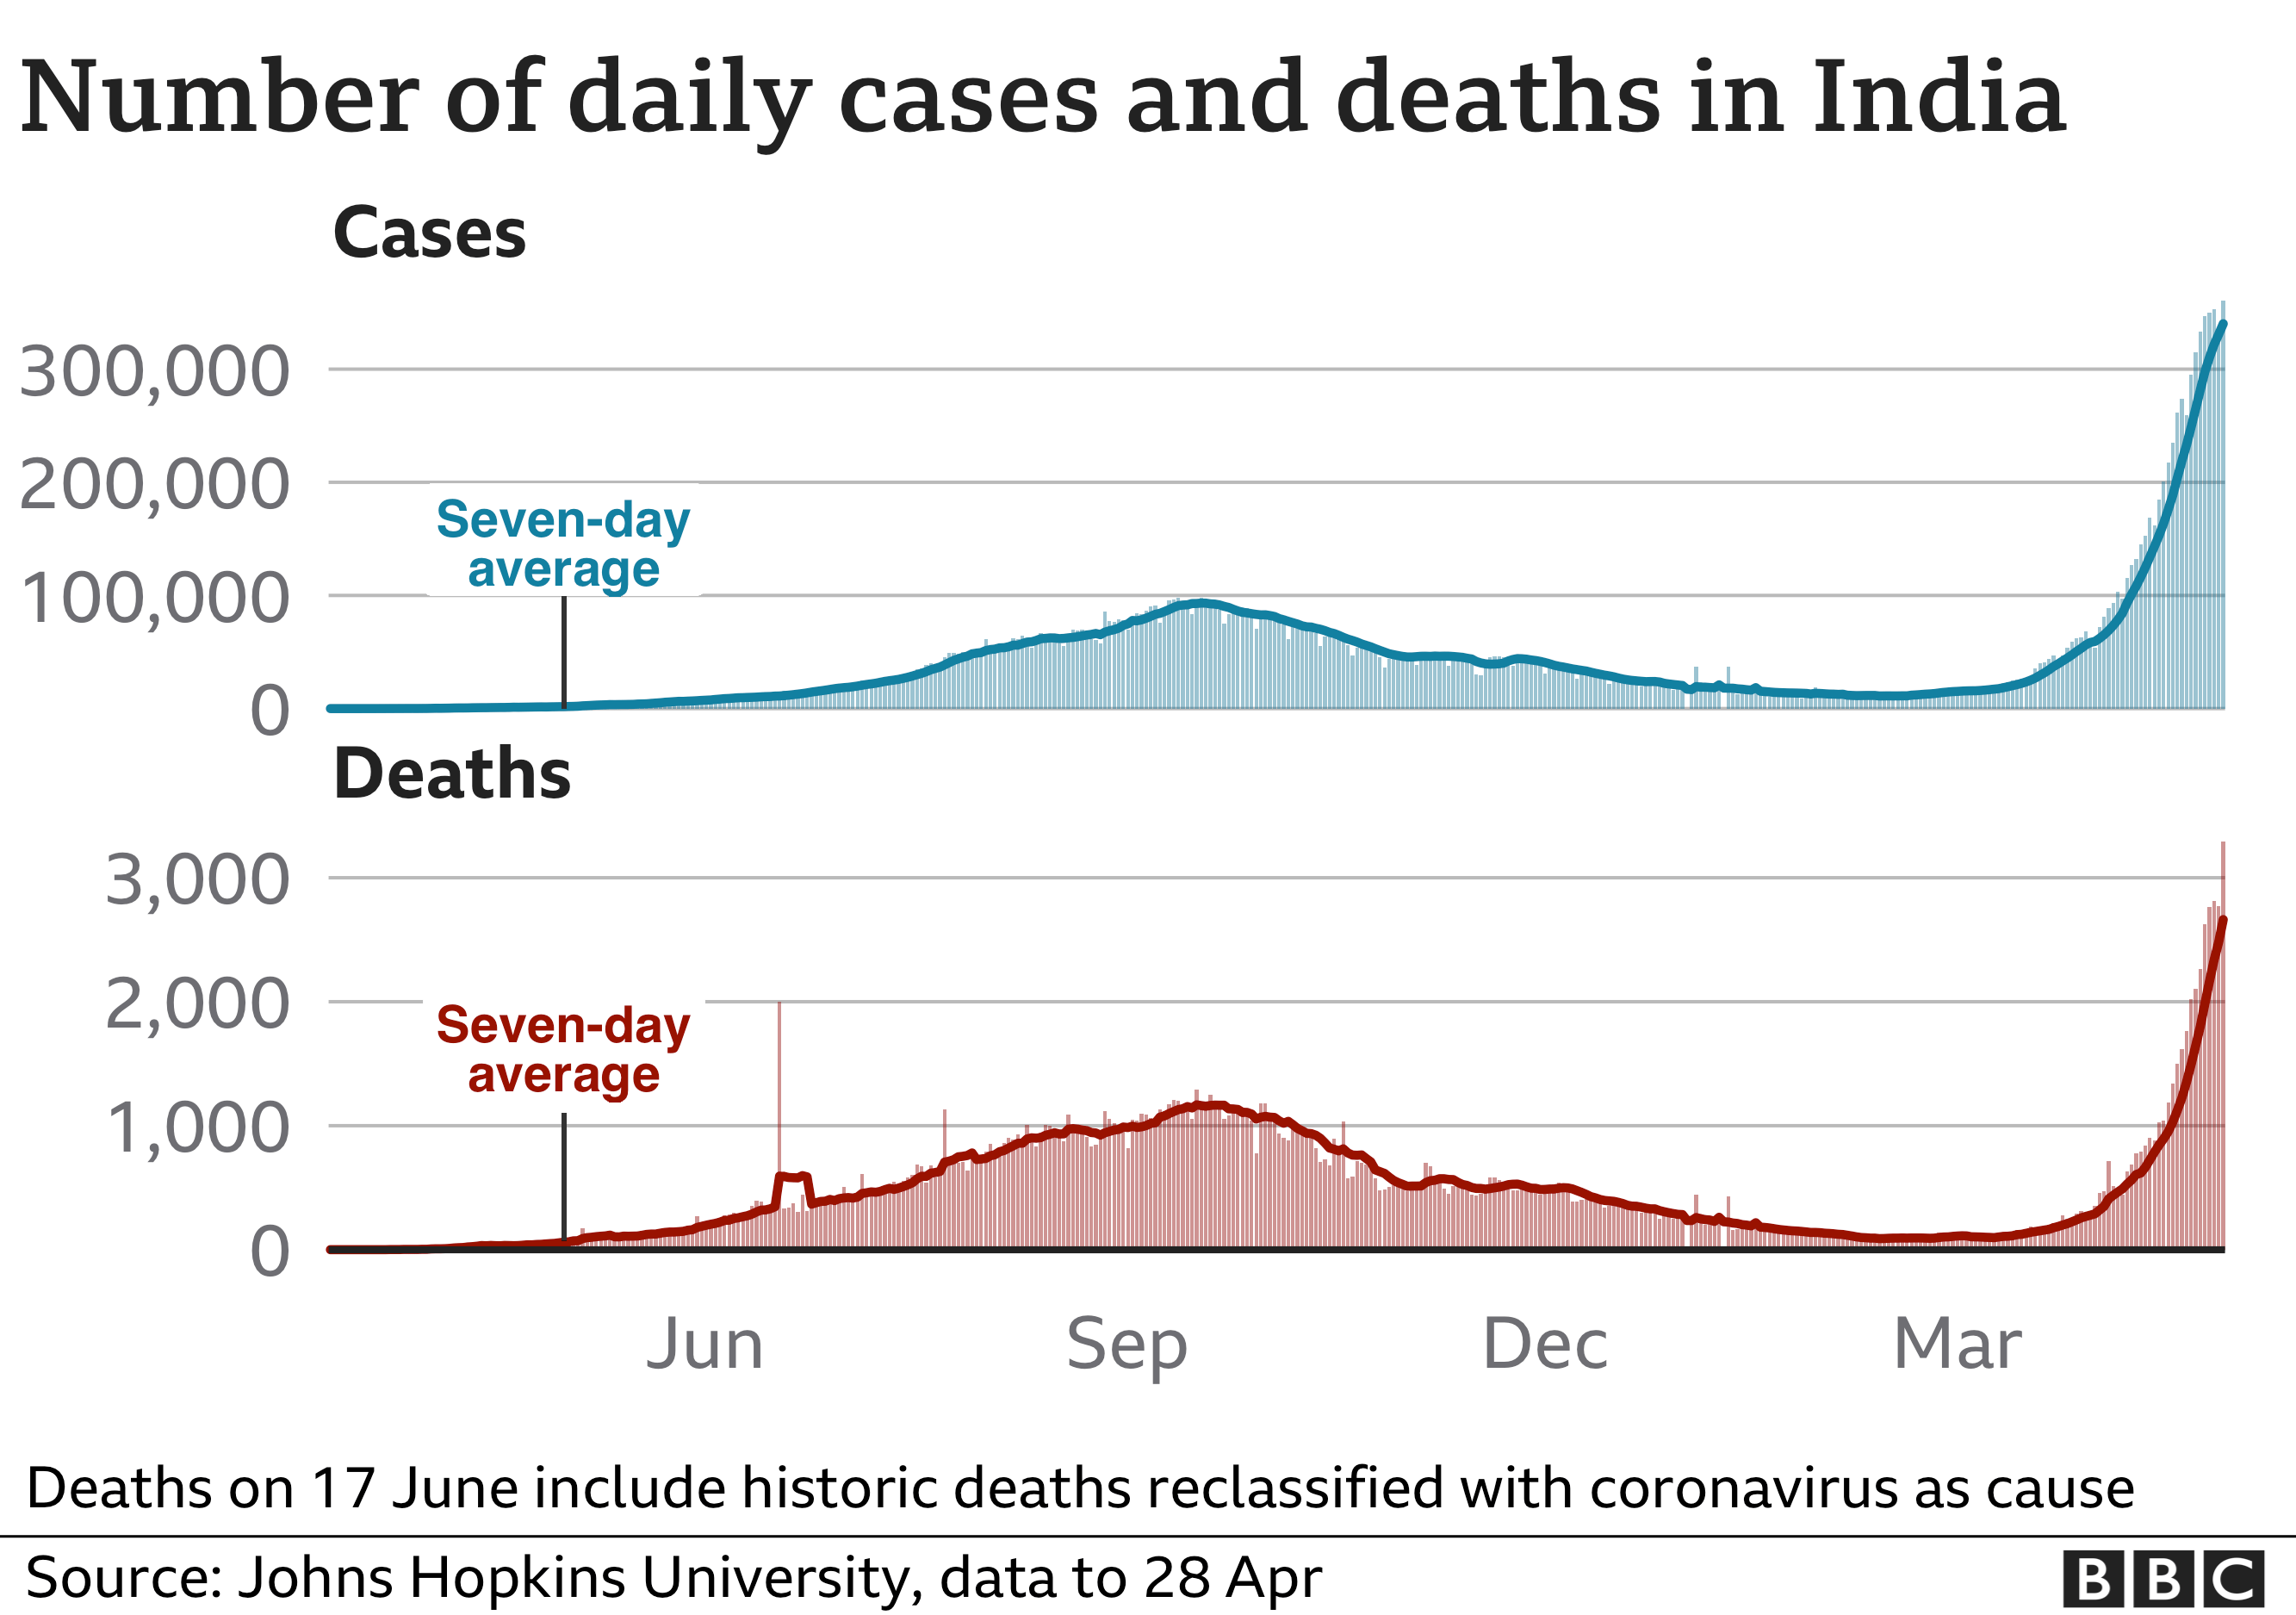 Number of cases and deaths